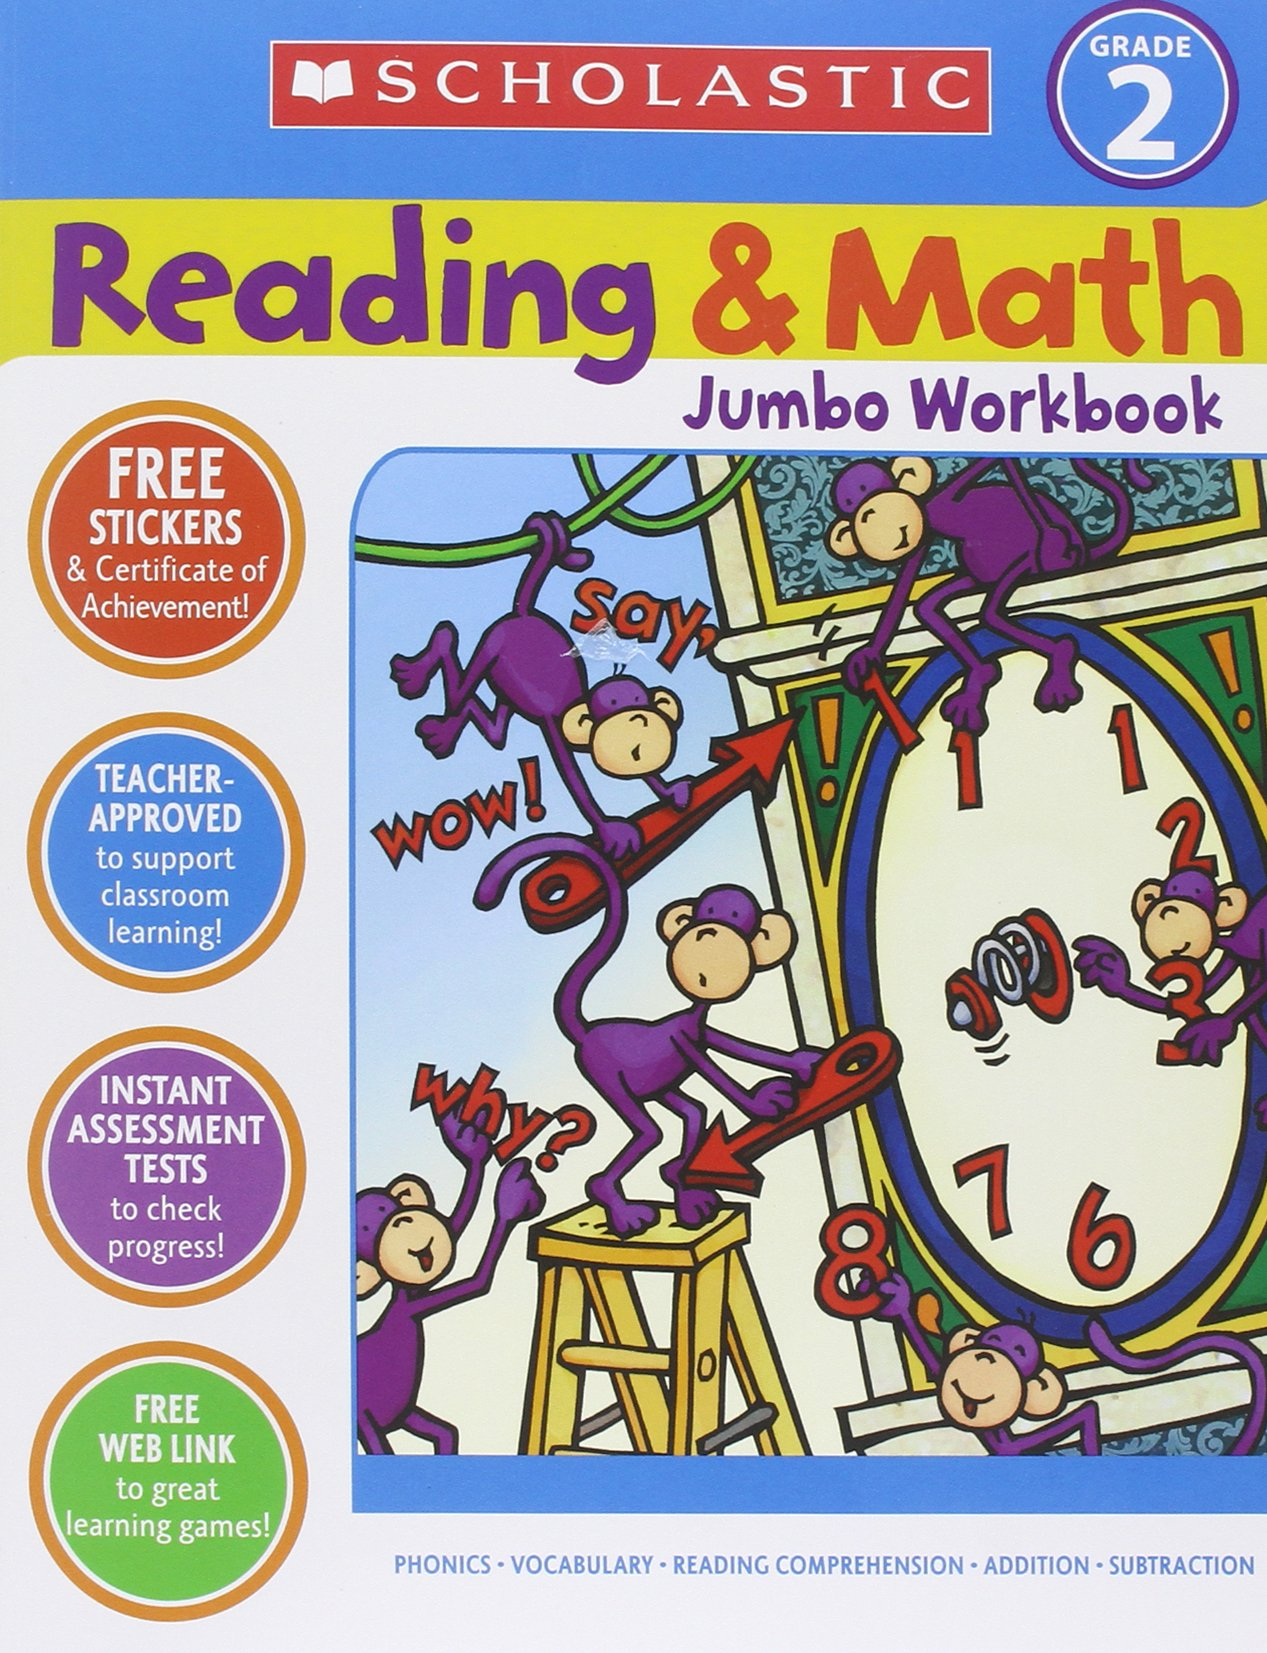 Amazon.com: Reading & Math Jumbo Workbook: Grade 2 (9780439786010 ...